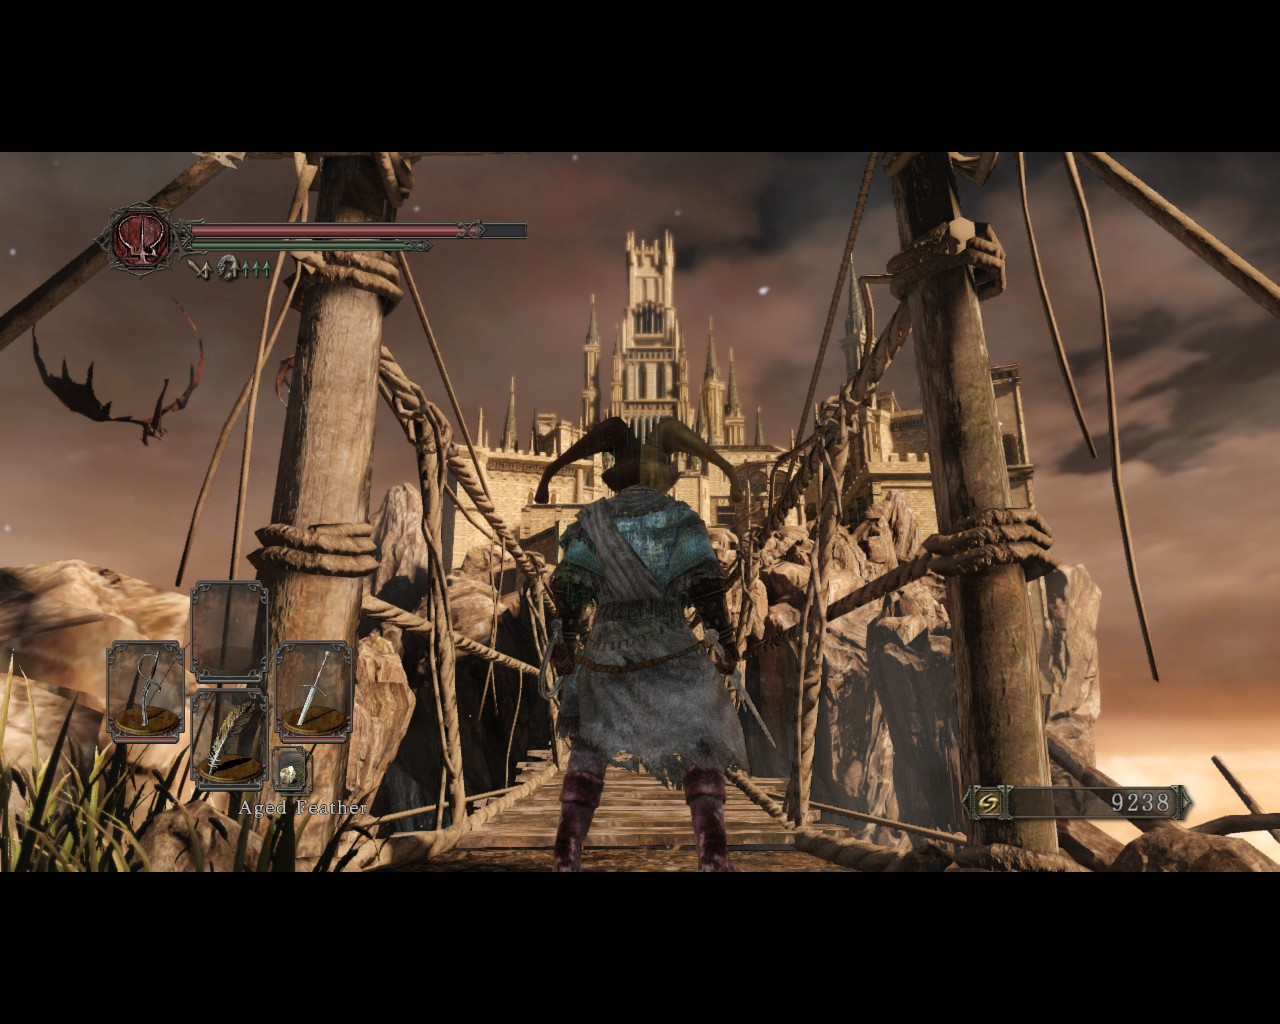 Training Day In Demons Souls With Great Level Design Game Wisdom